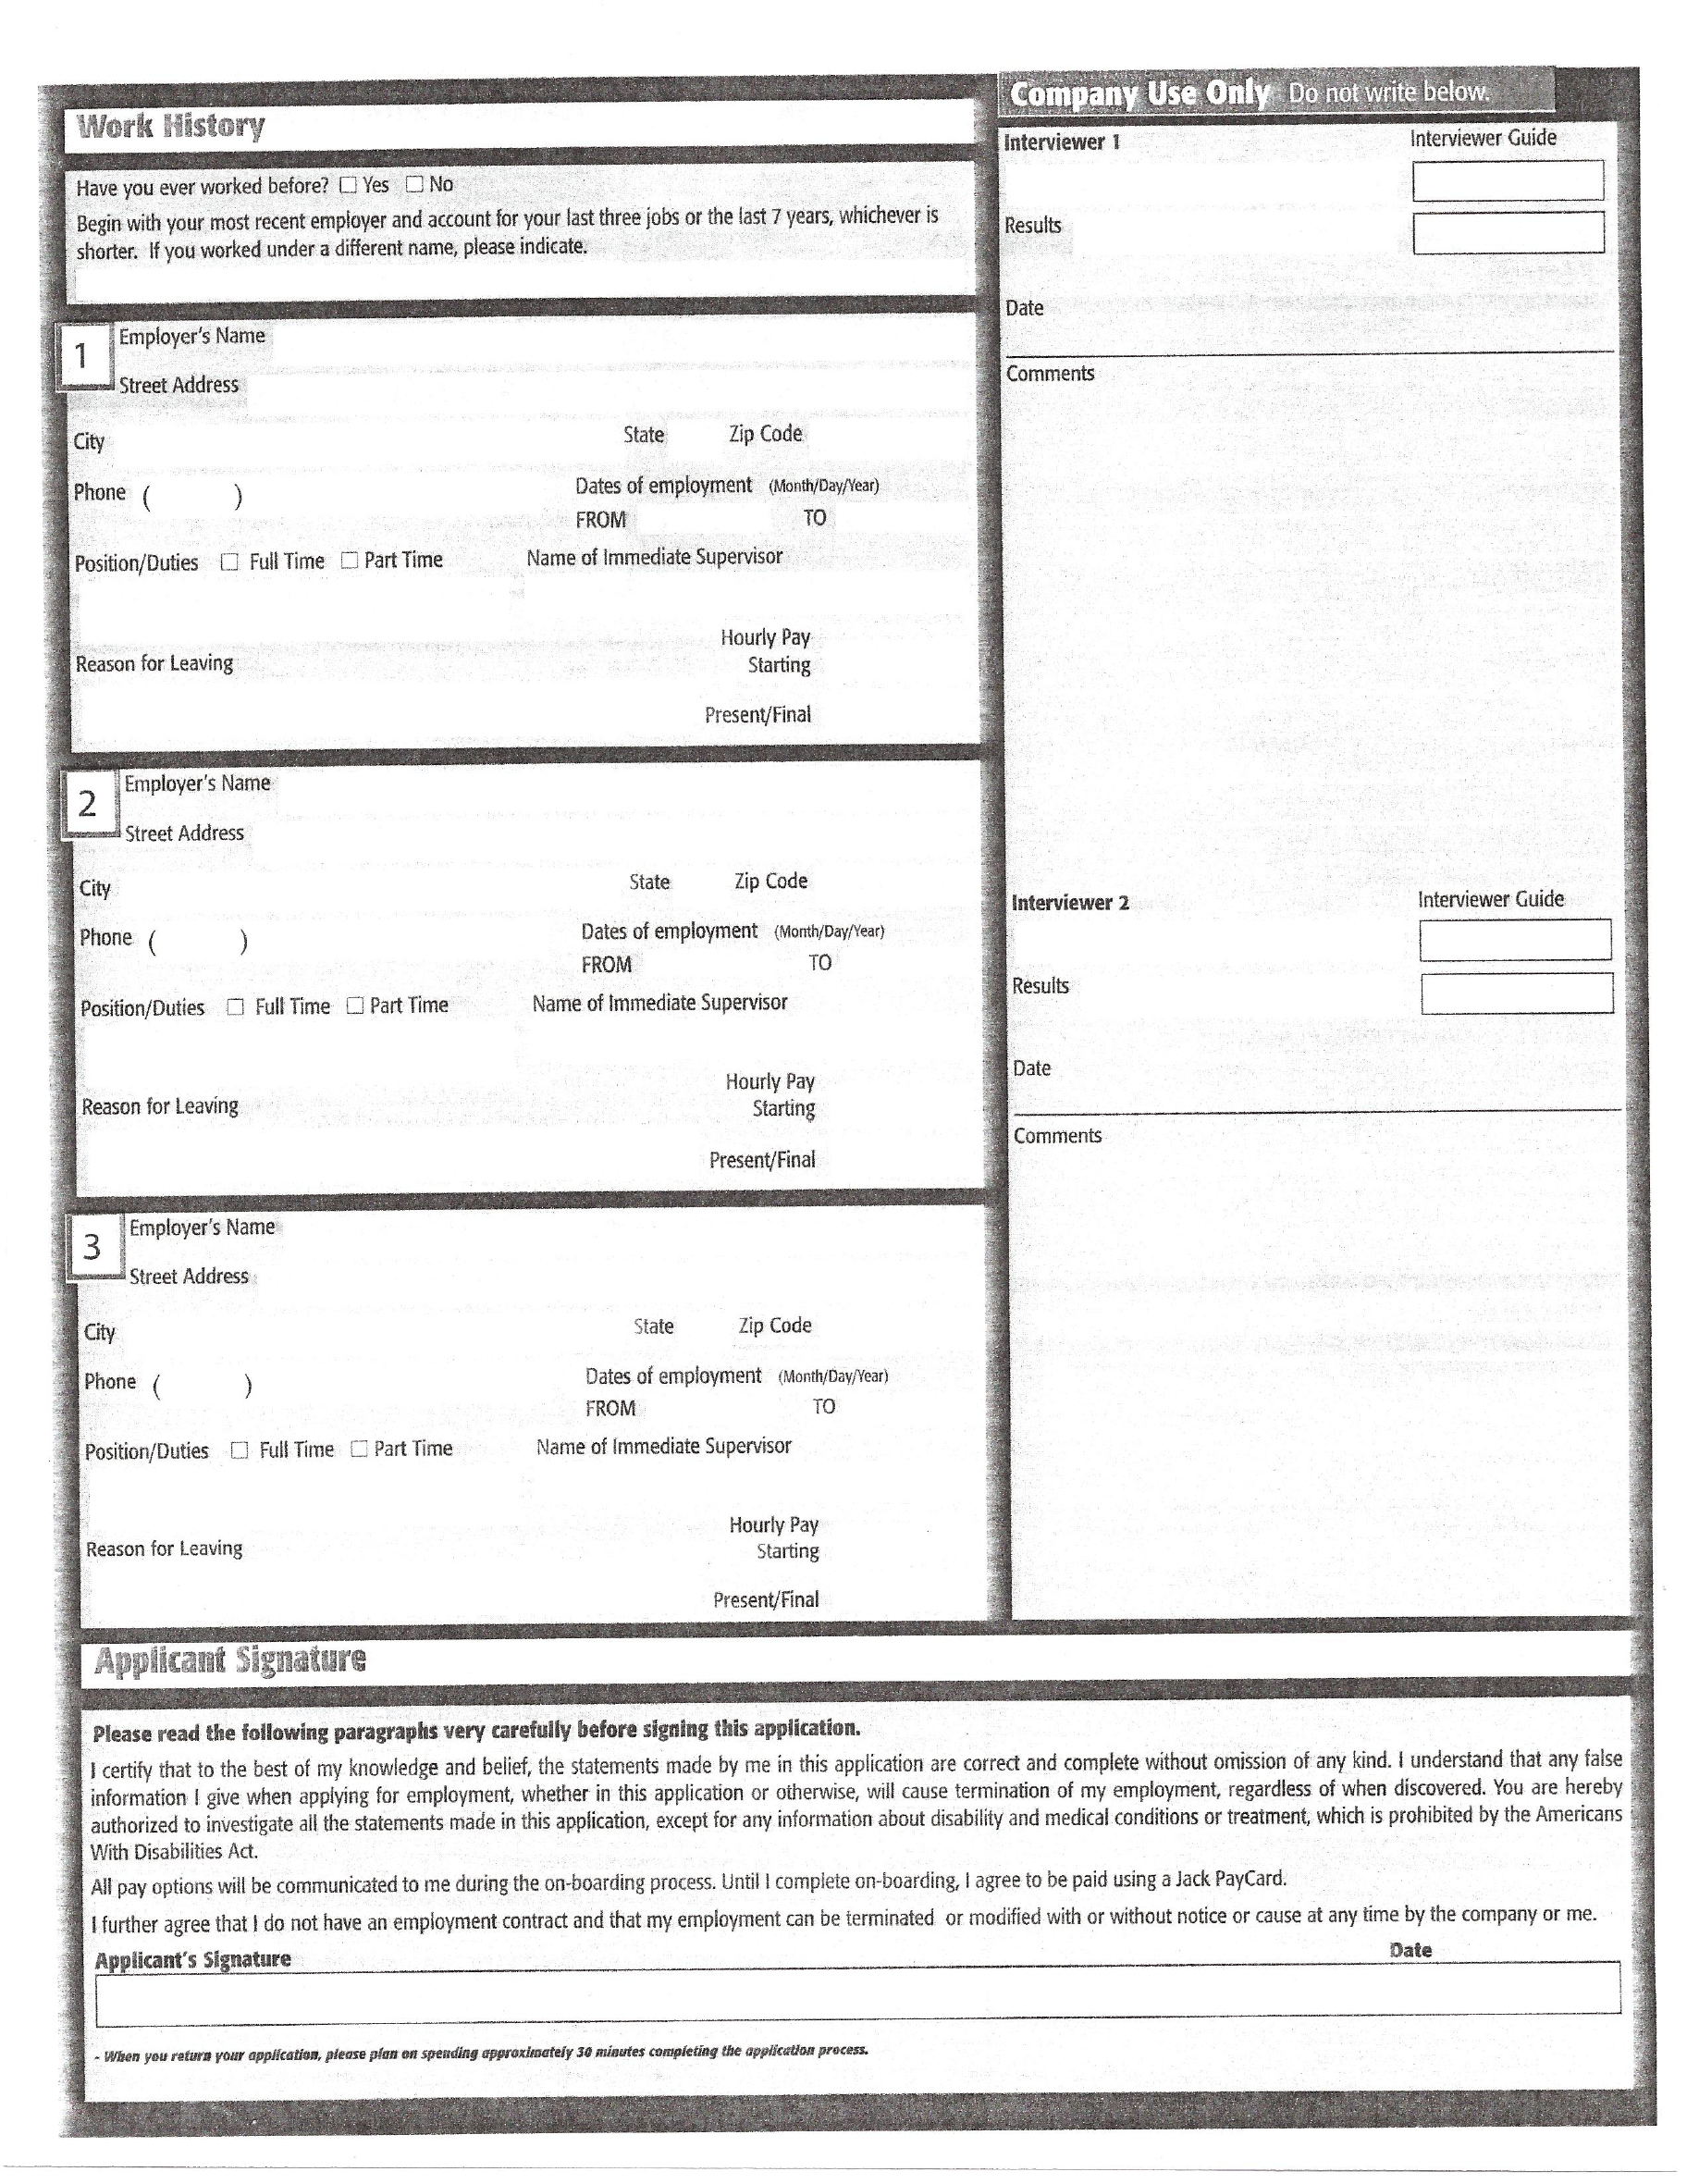 Jack In The Box Part Time Job Application Form Free Download